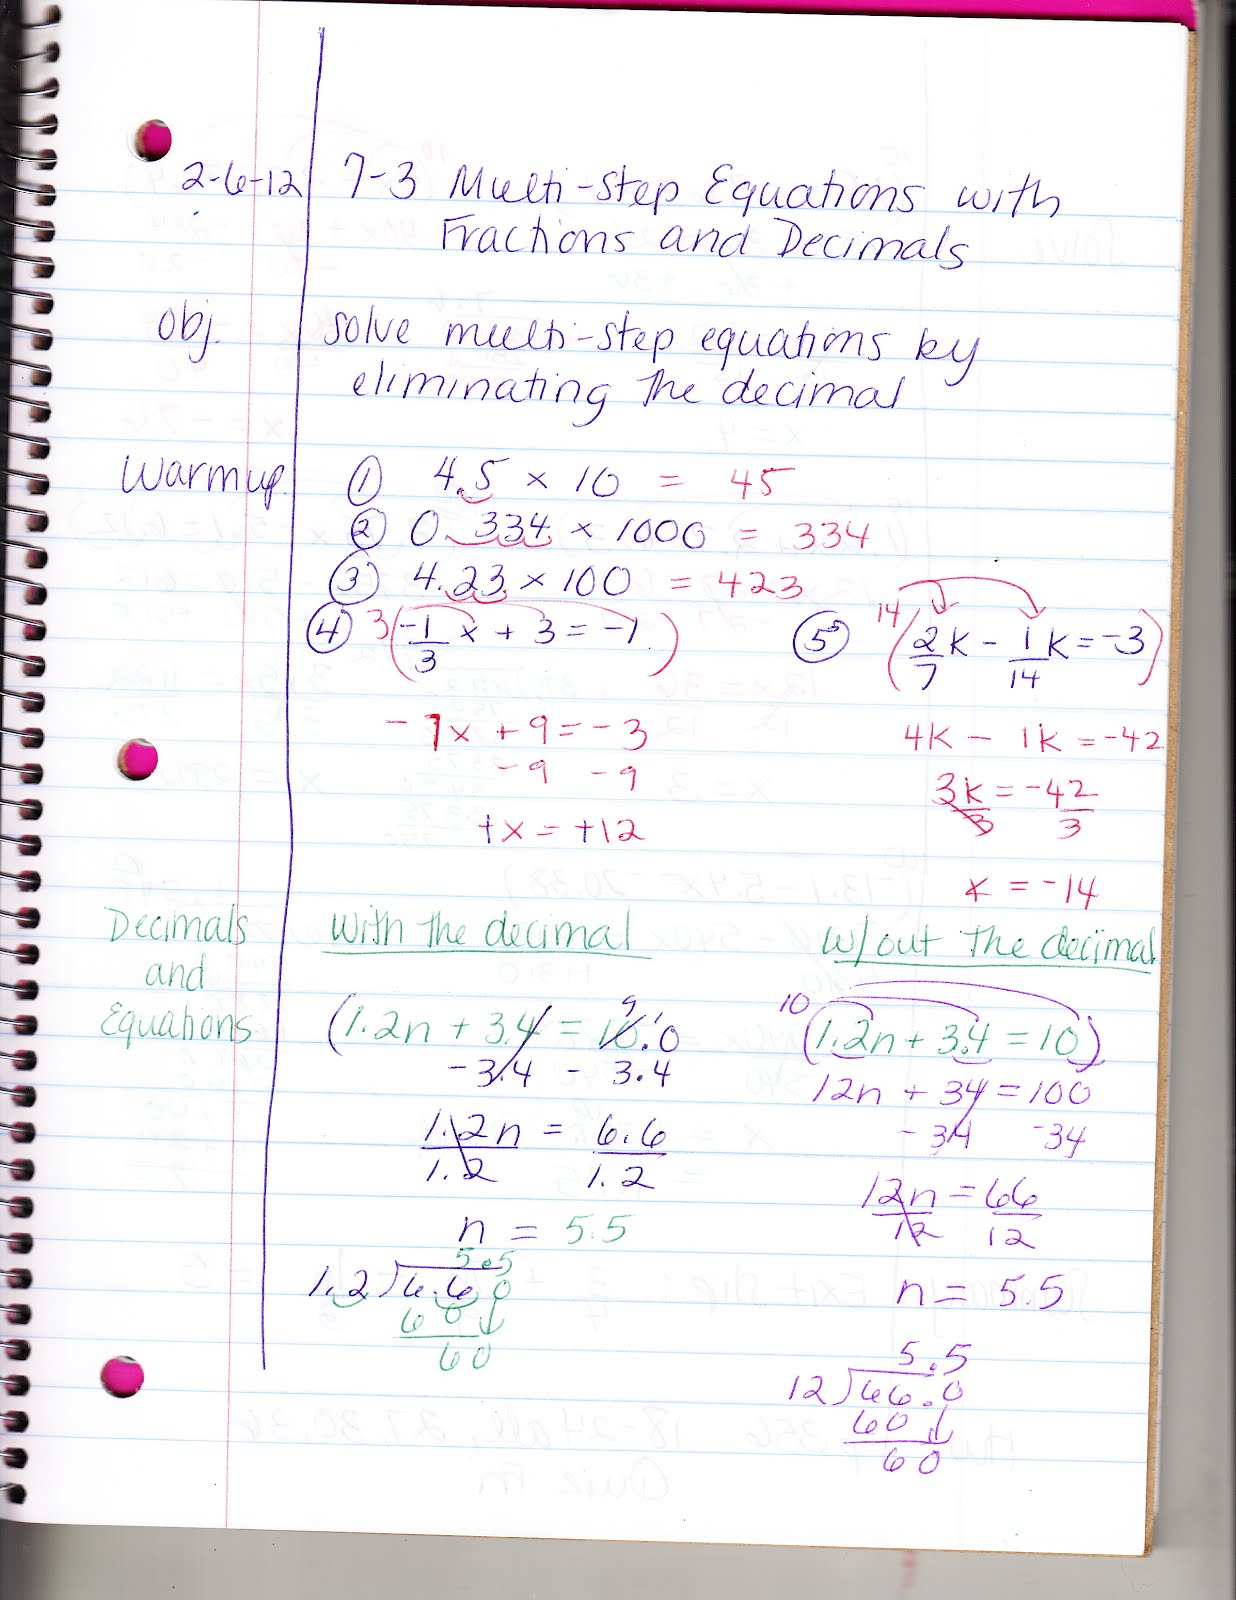 Ms Jean S Classroom Blog 7 3 Solving Multi Step Equations With Fractions And Decimals